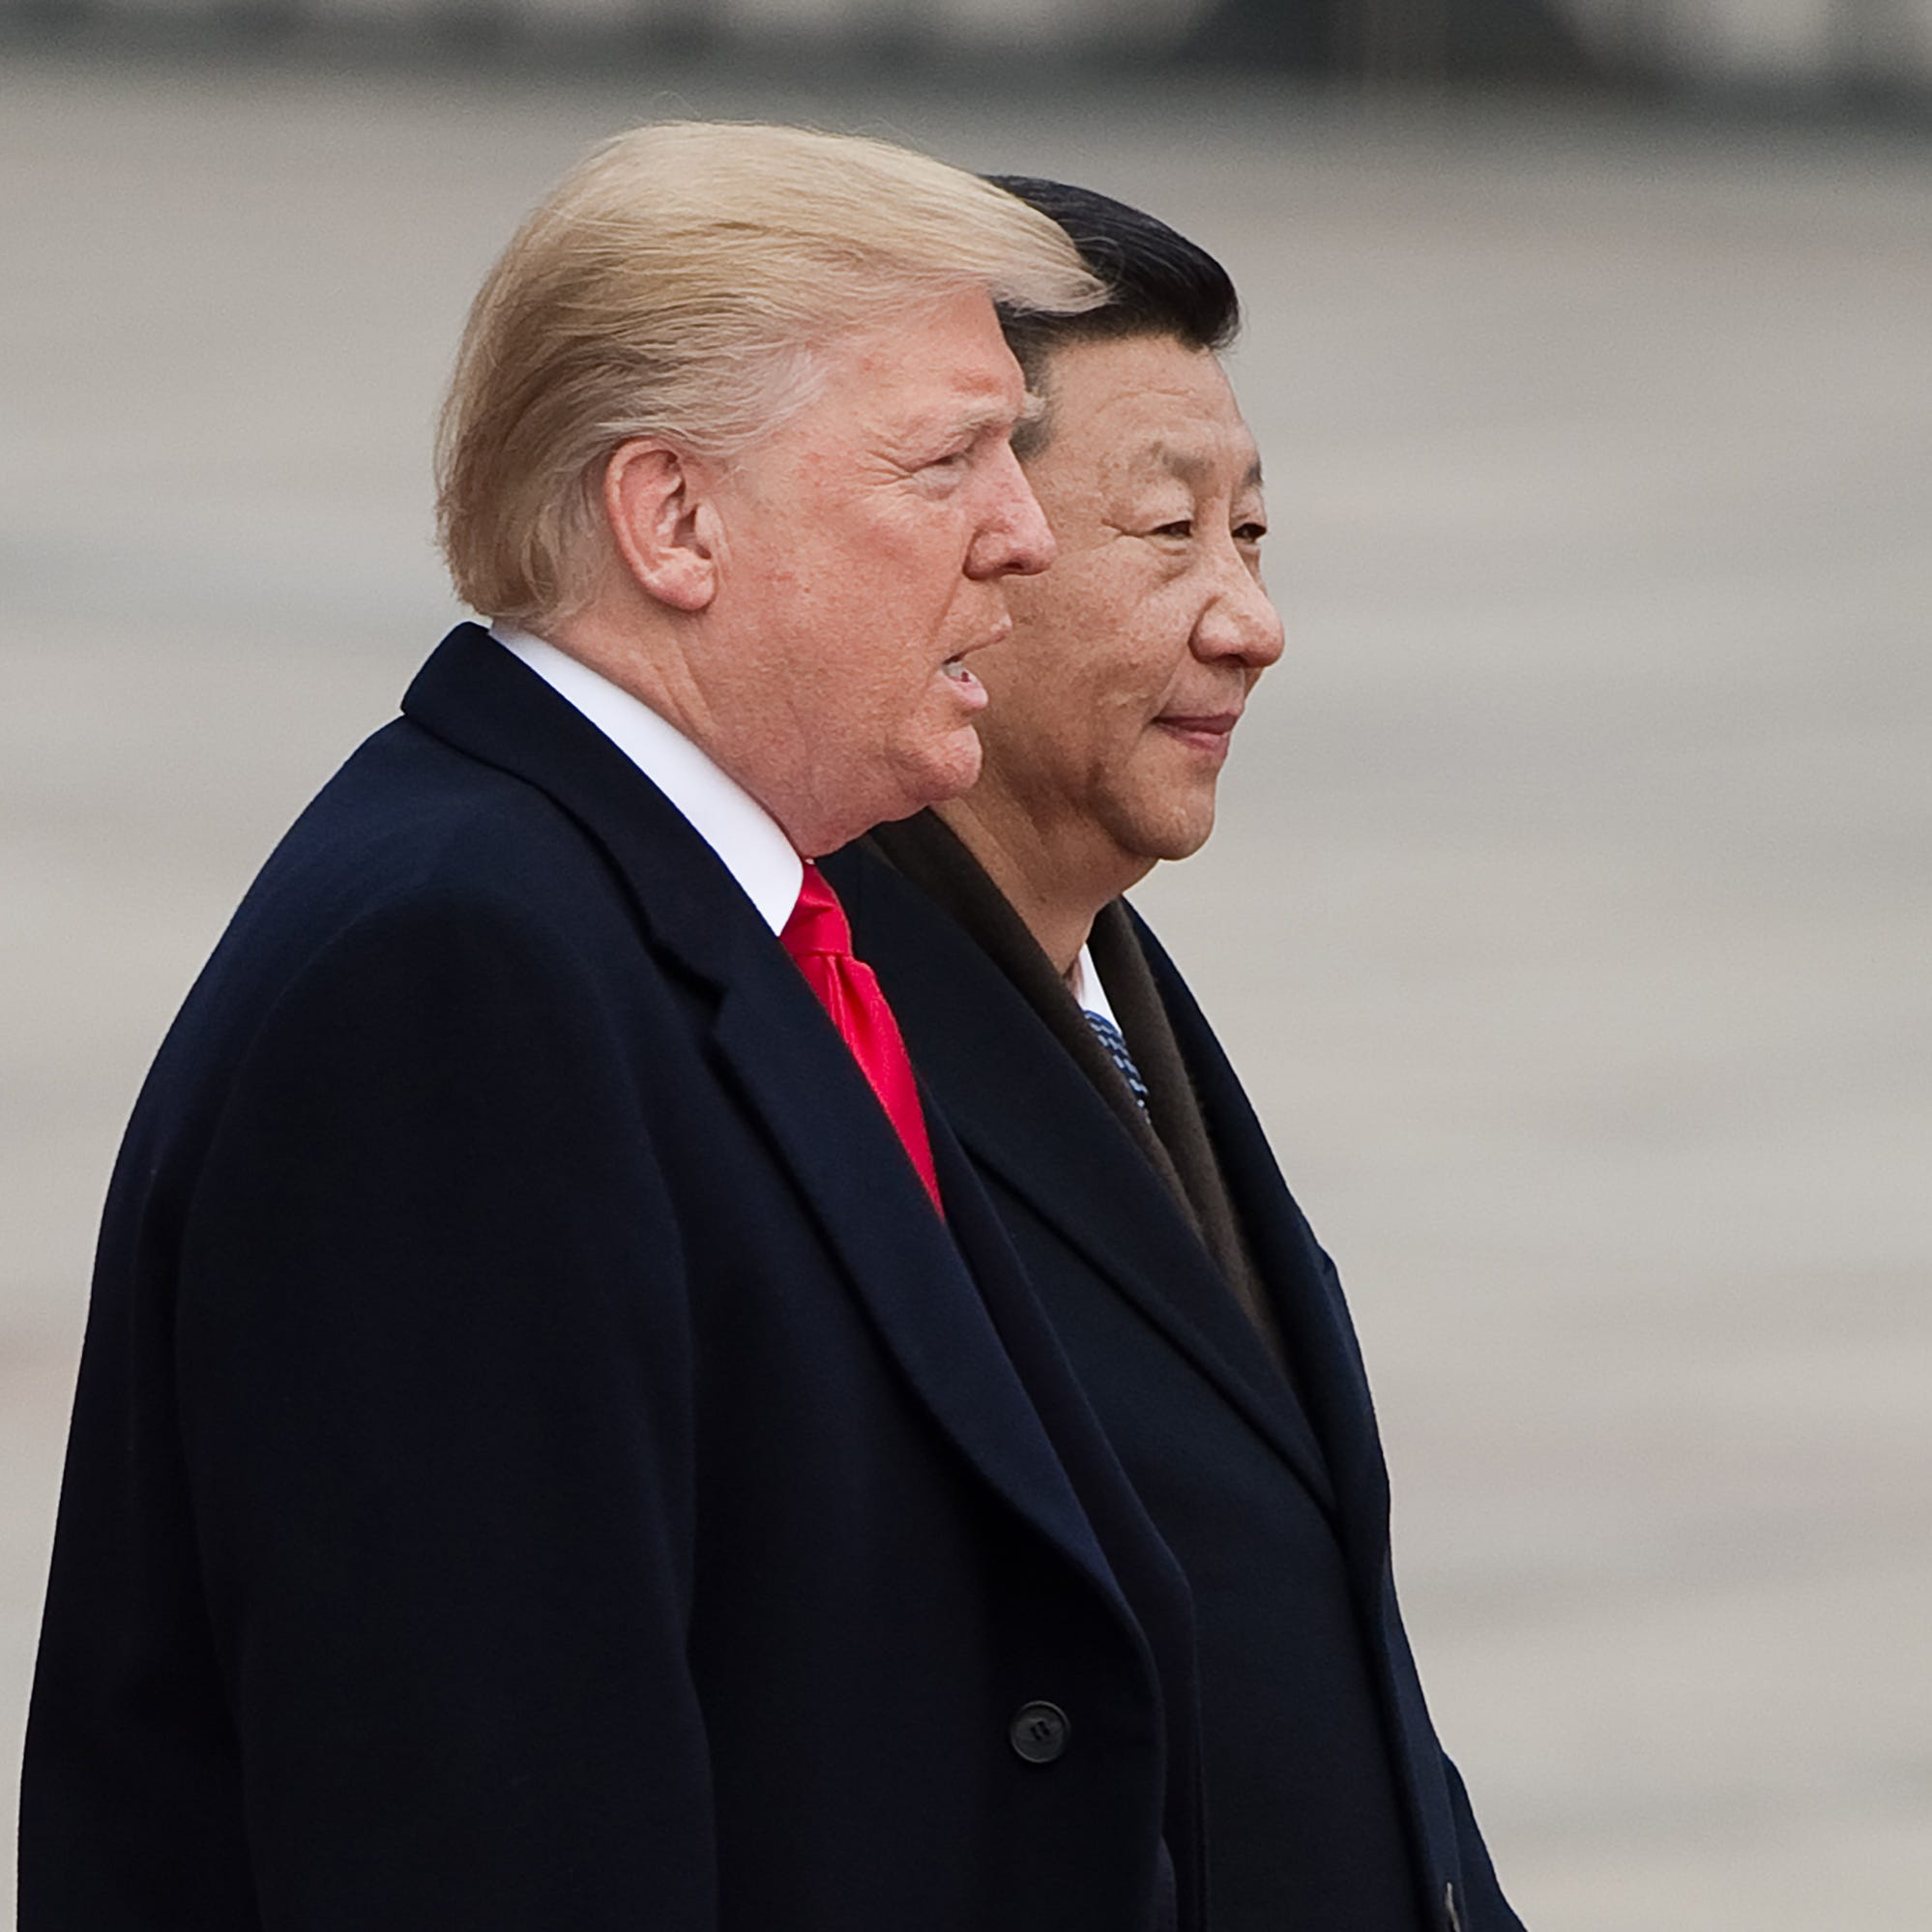 Trump's hardball tactics against China just might work